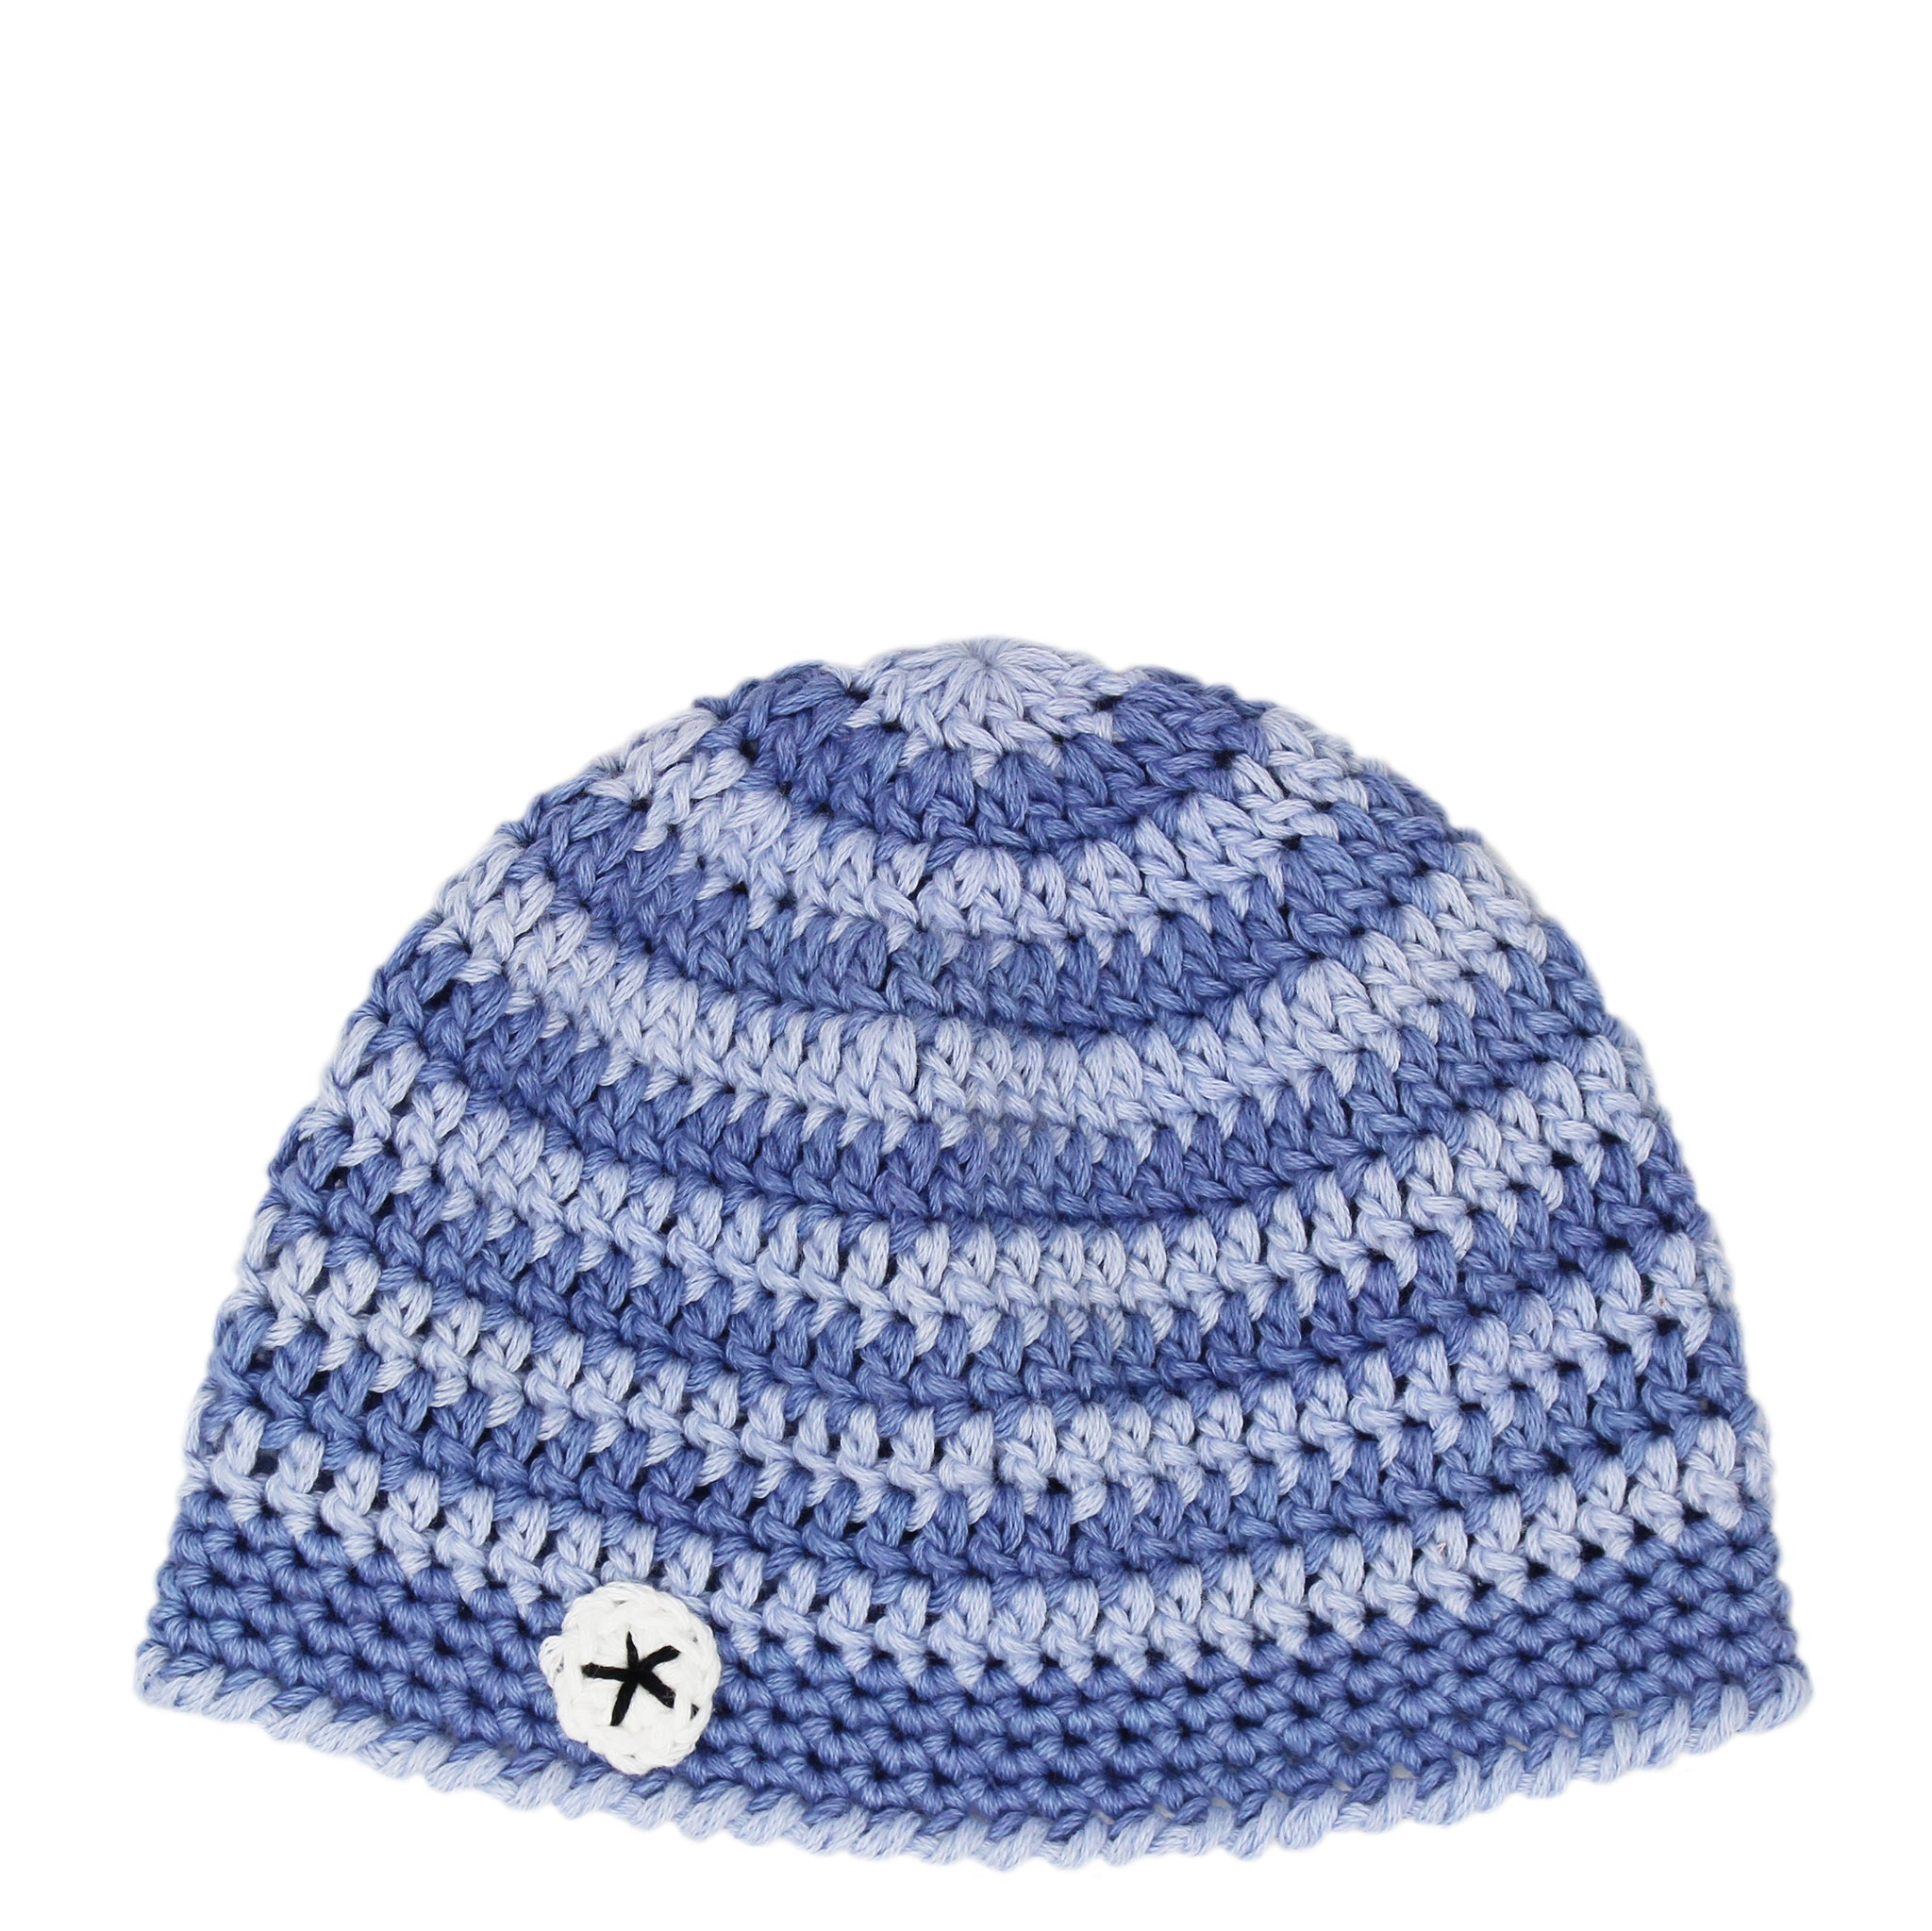 hand crocheted baby beanie - blue stripe